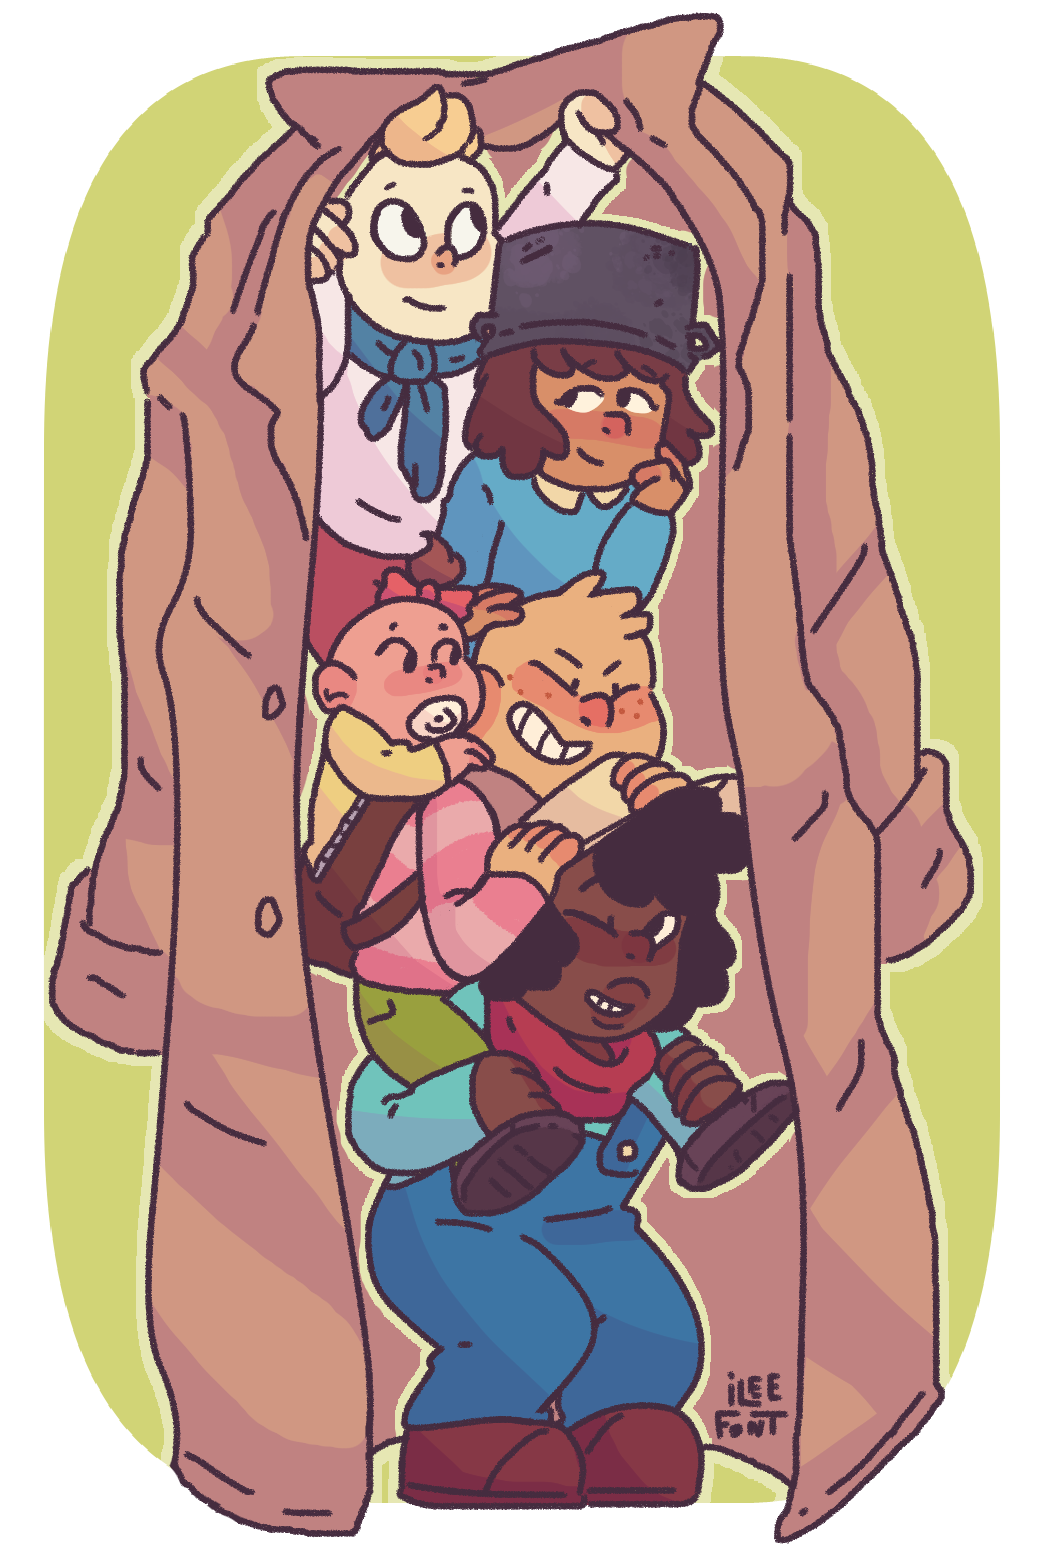 A bunch of kids in a trench coat